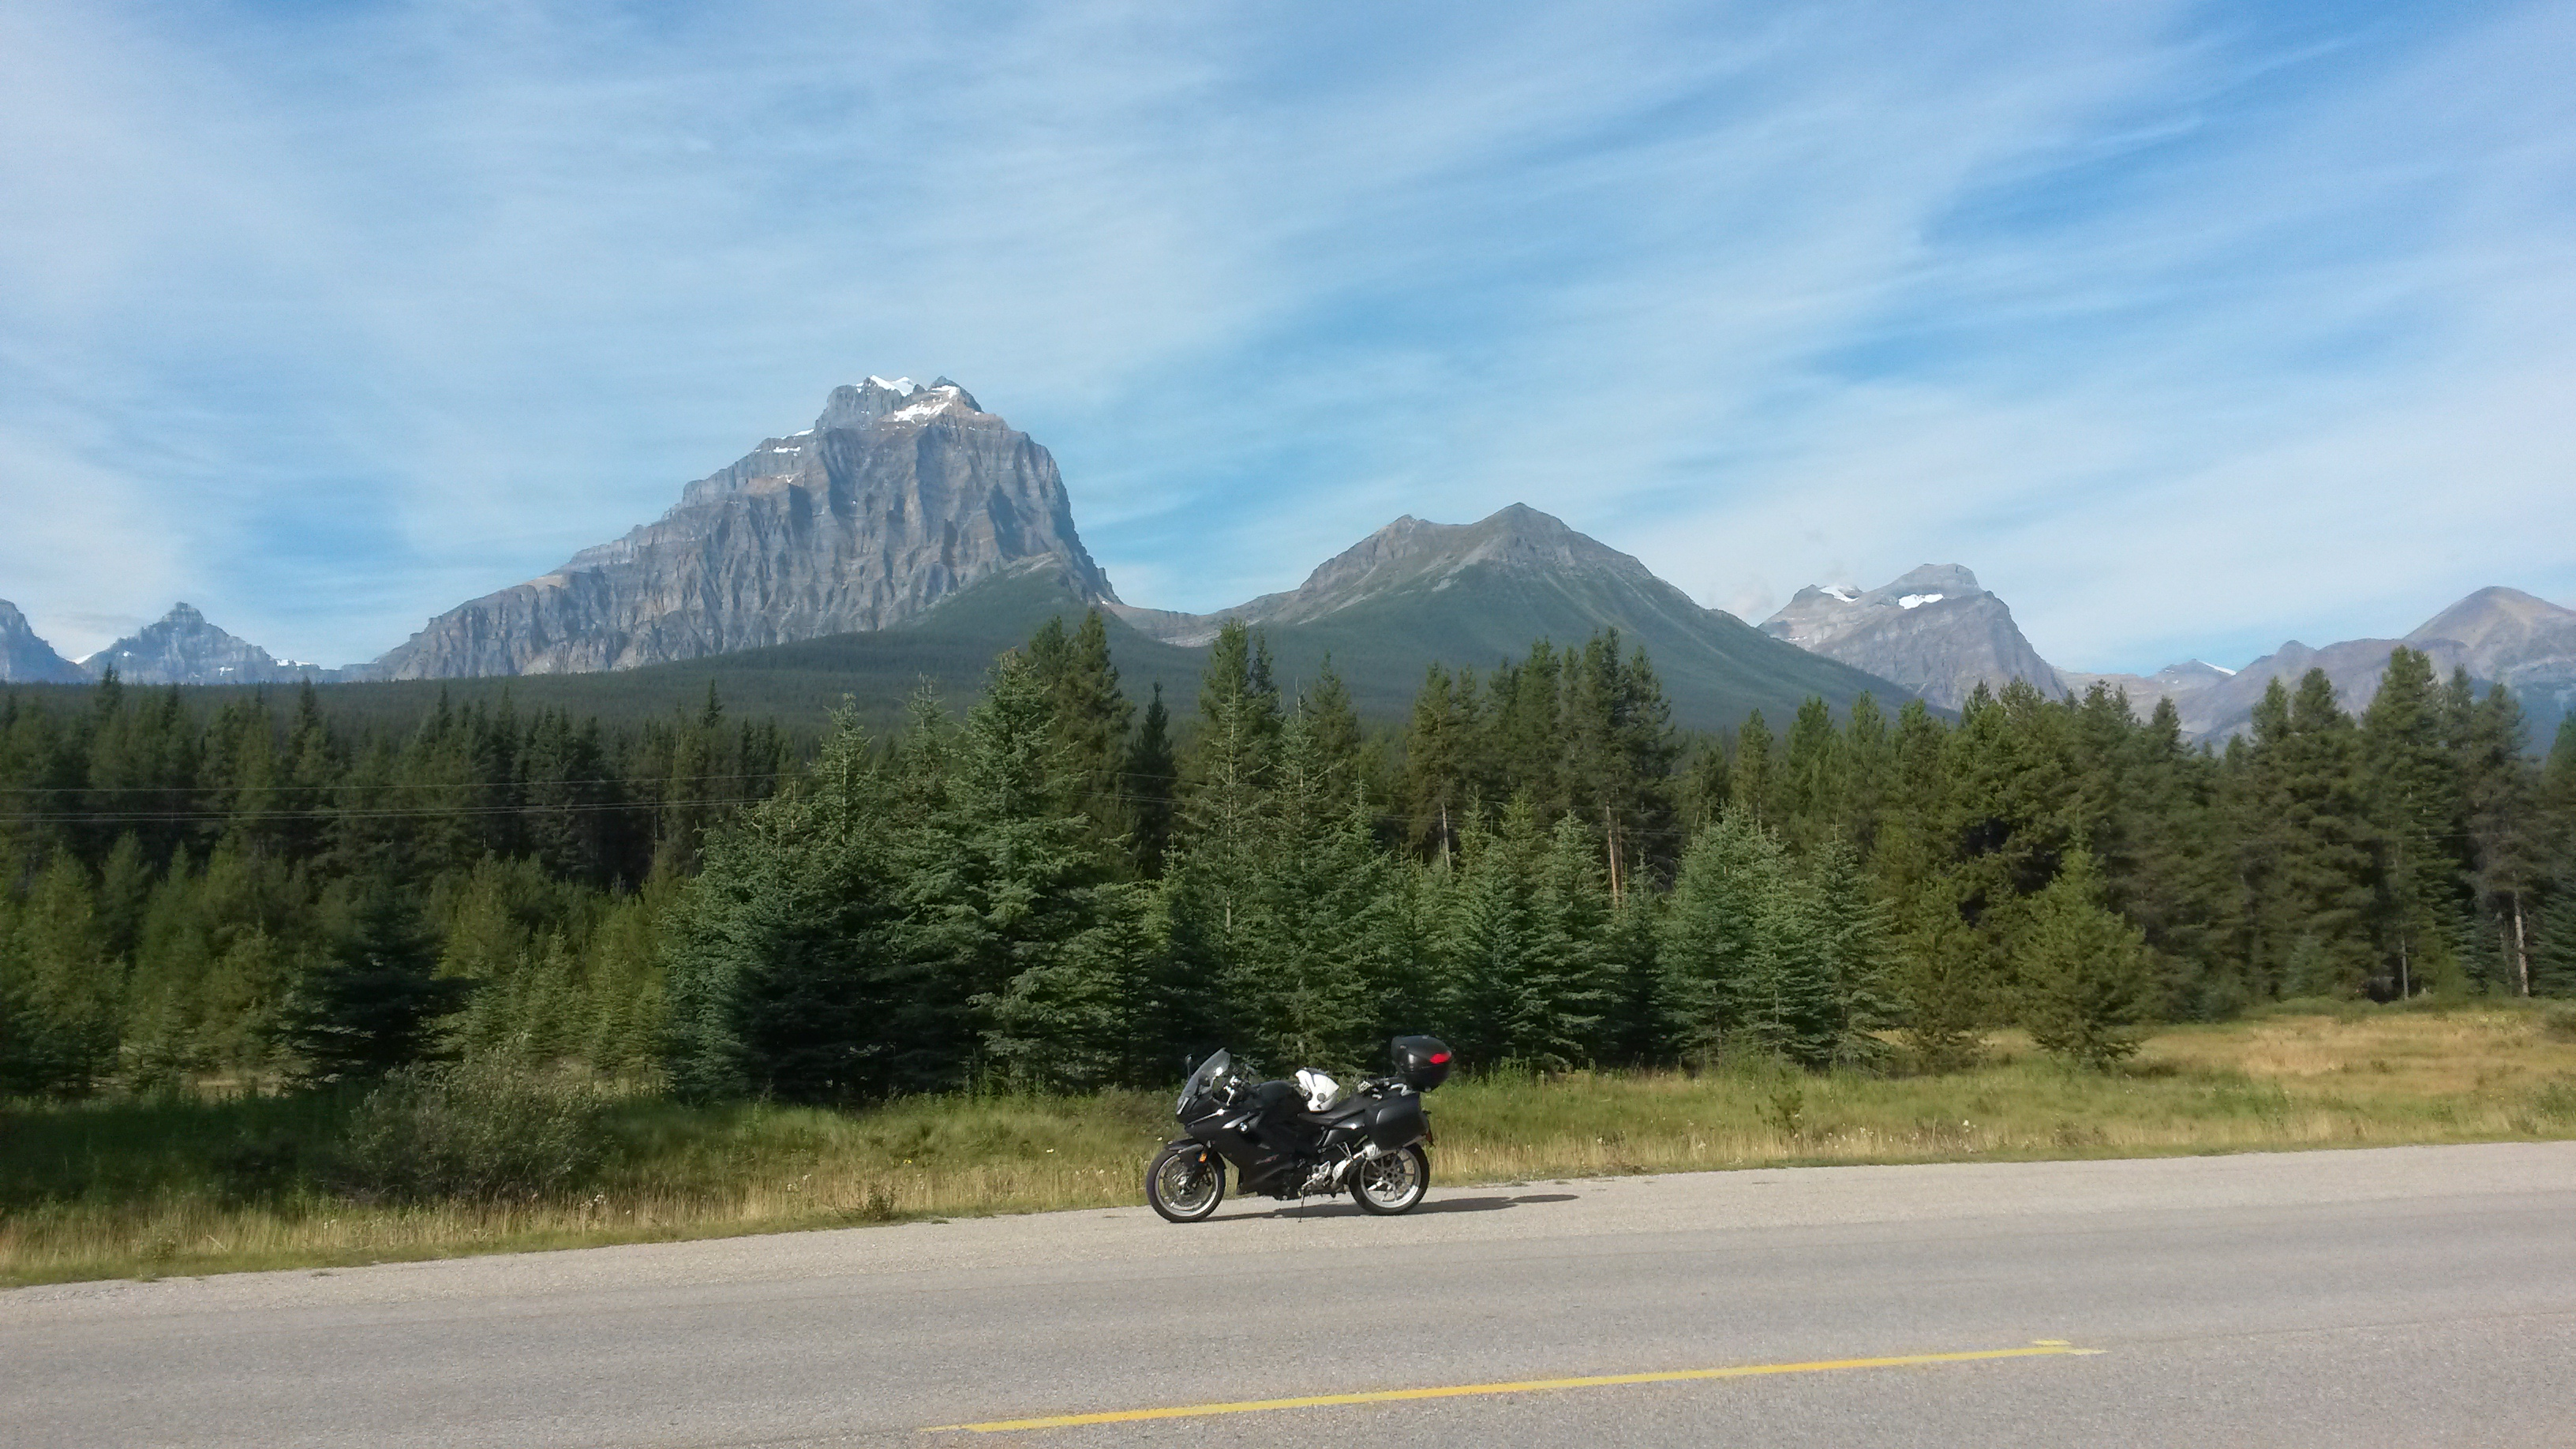 More motorcycle travel videos on the YouTube channel!! 100